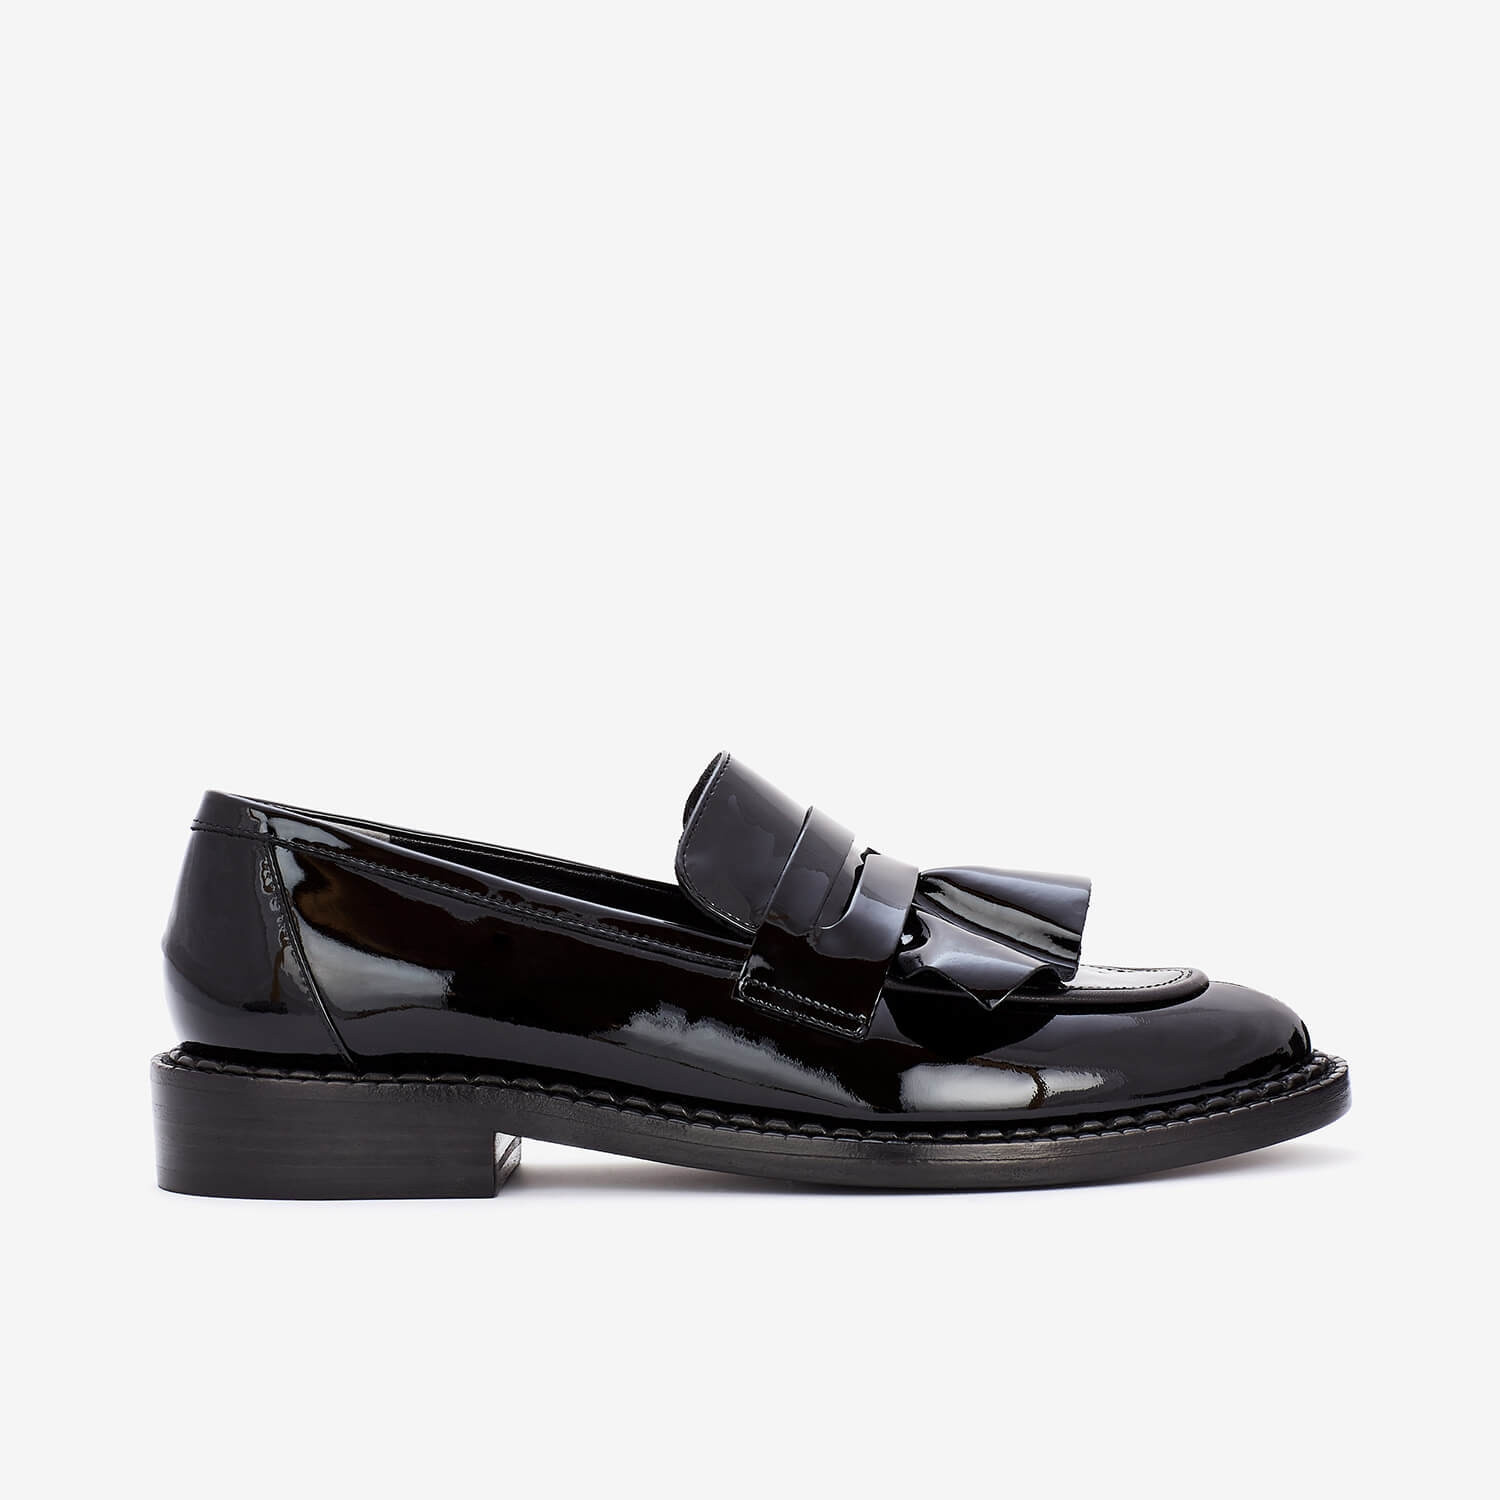 clearance top quality Robert Clergerie Joux Leather Loafers great deals online zHa6eS